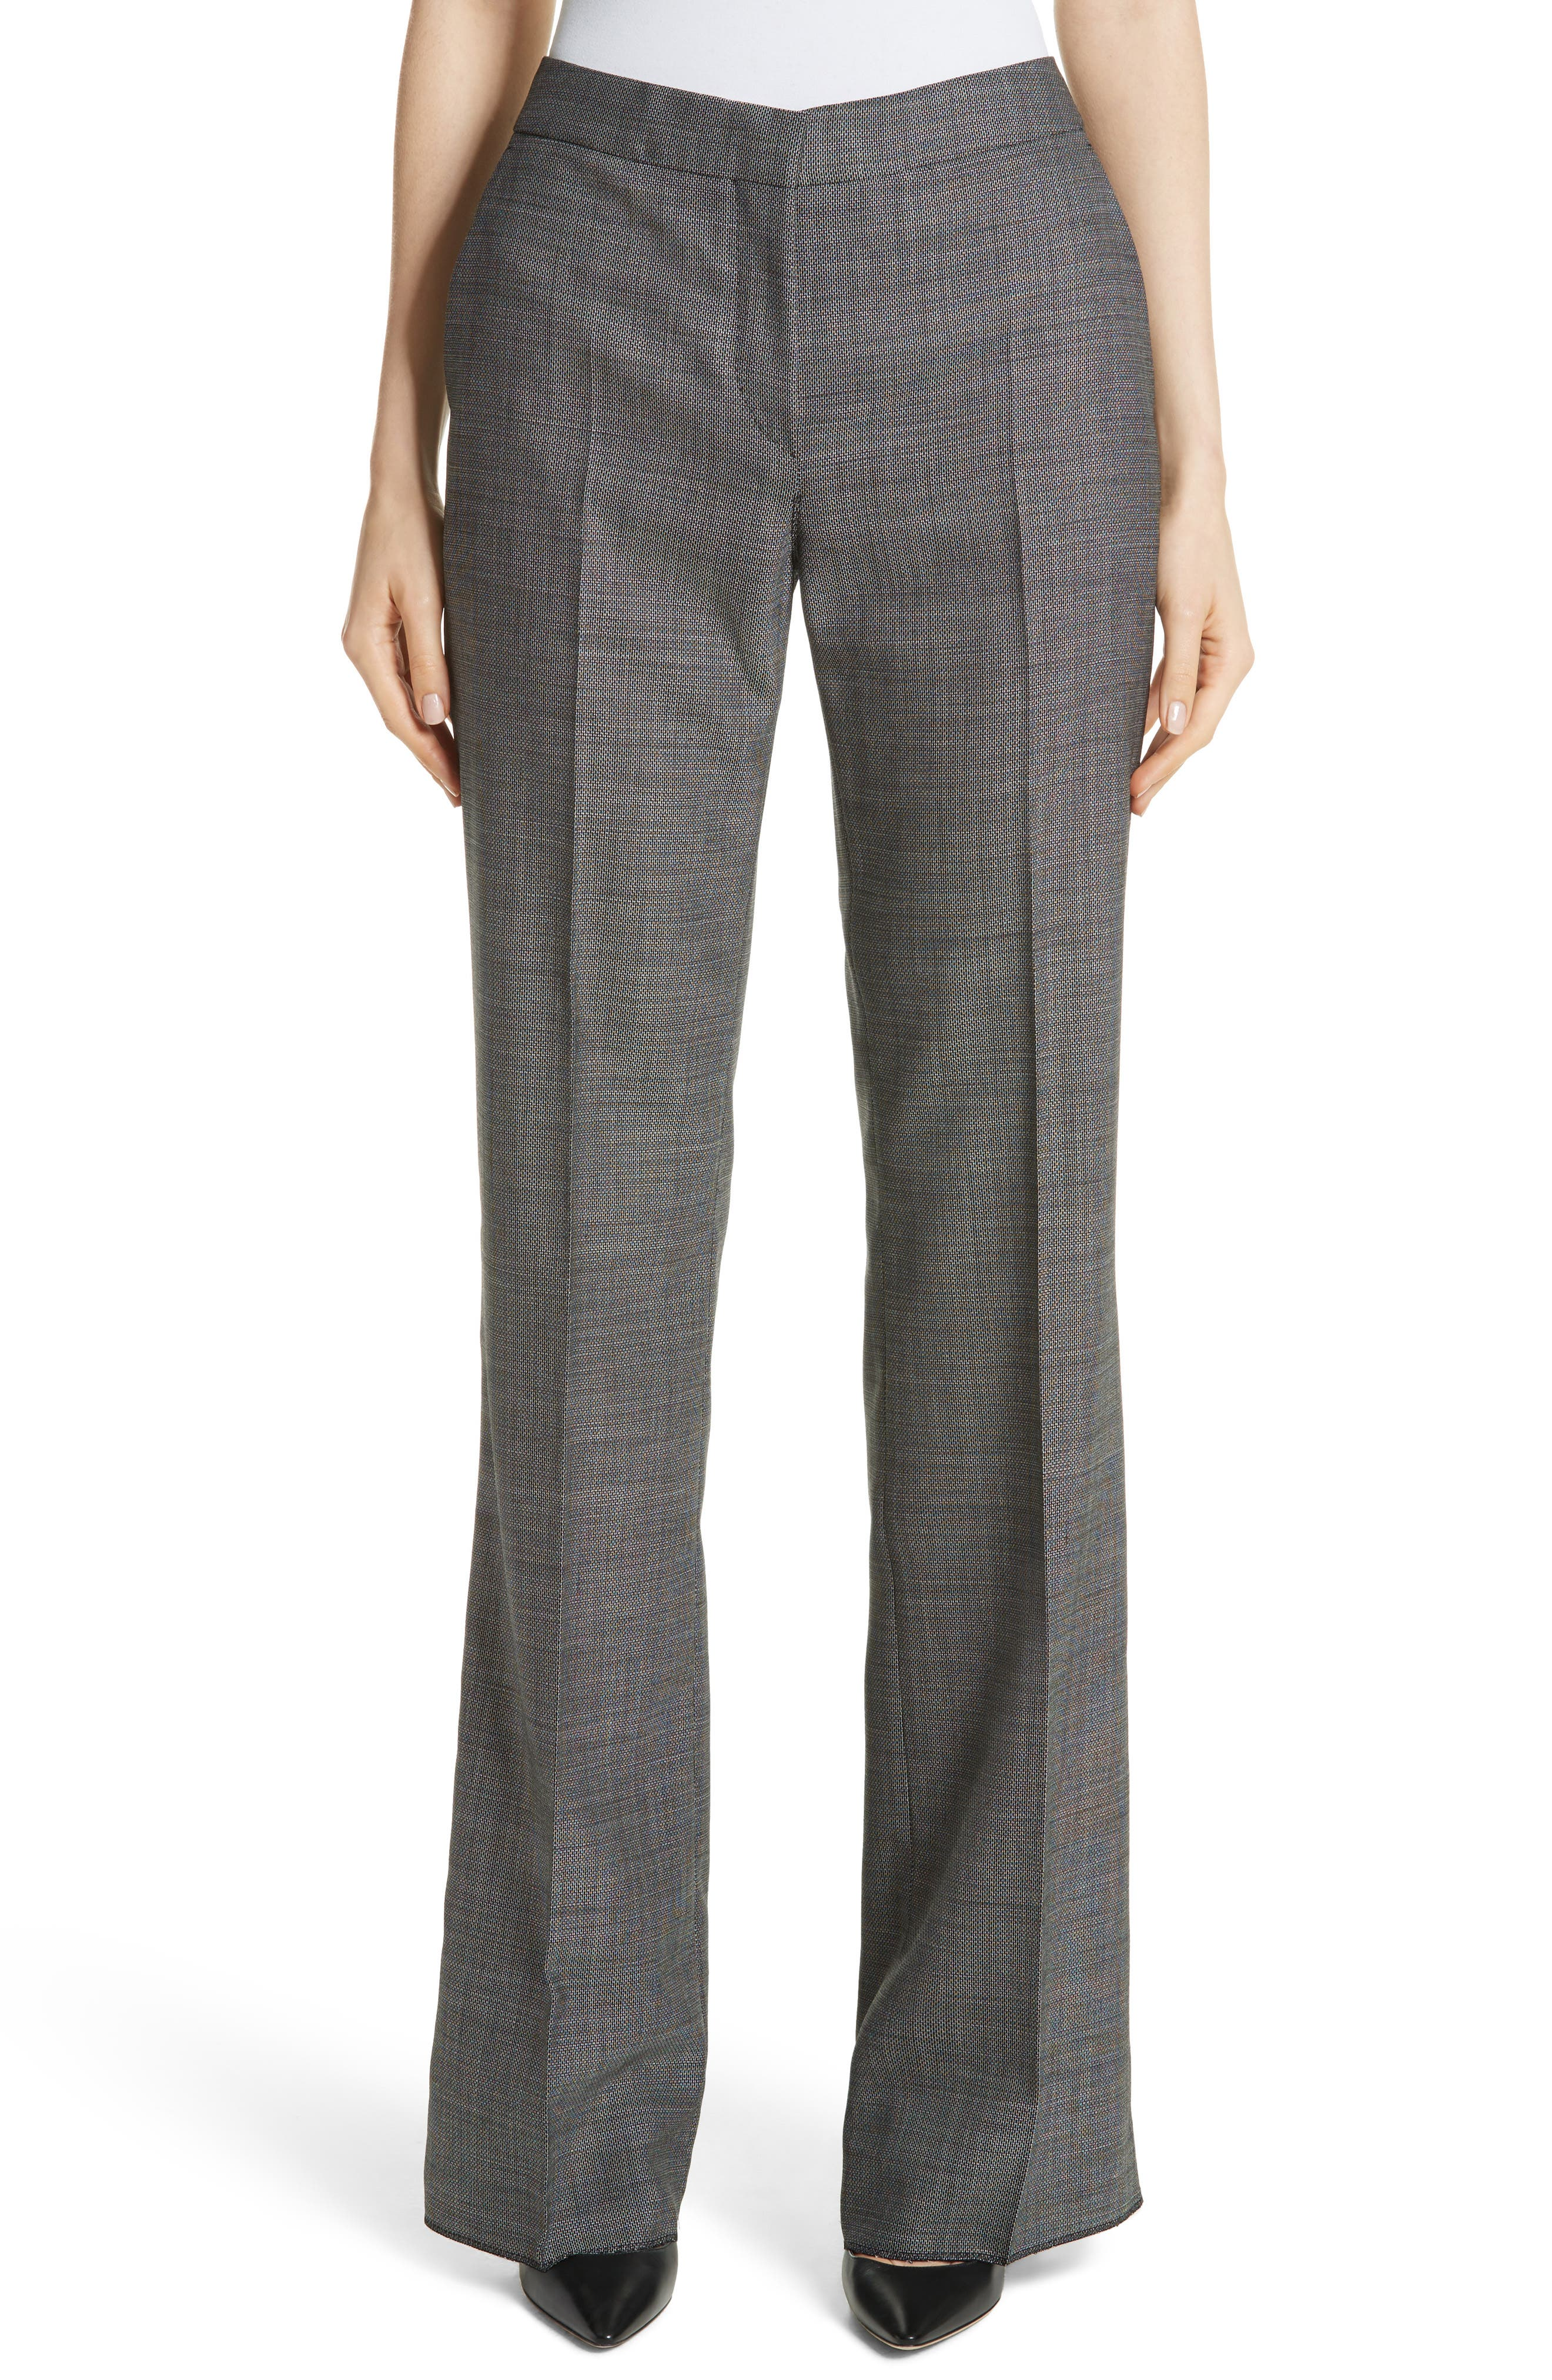 Verbas Stretch Wool Pants,                         Main,                         color, 001